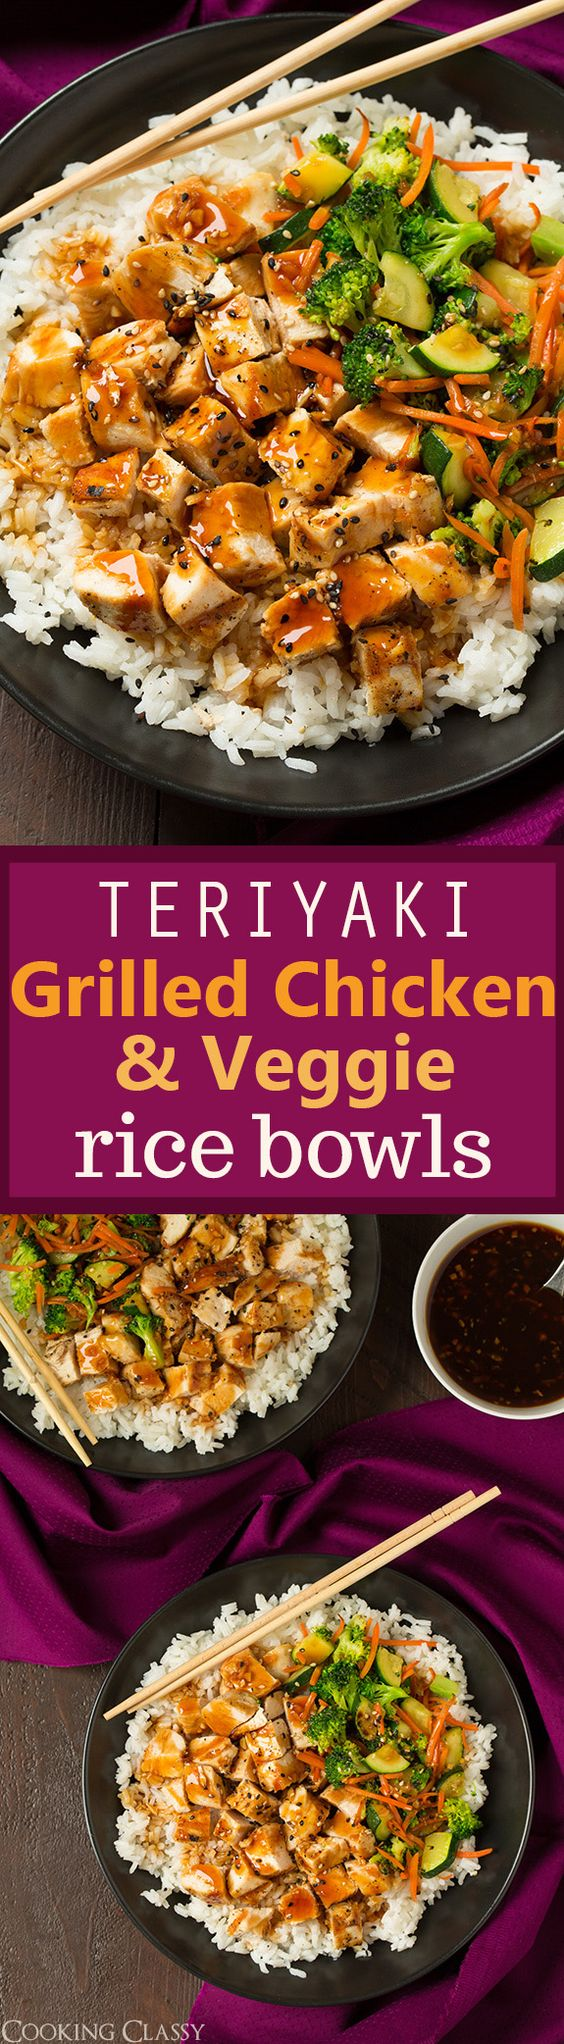 Easy grilled chicken teriyaki recipes – Poly food recipes blog